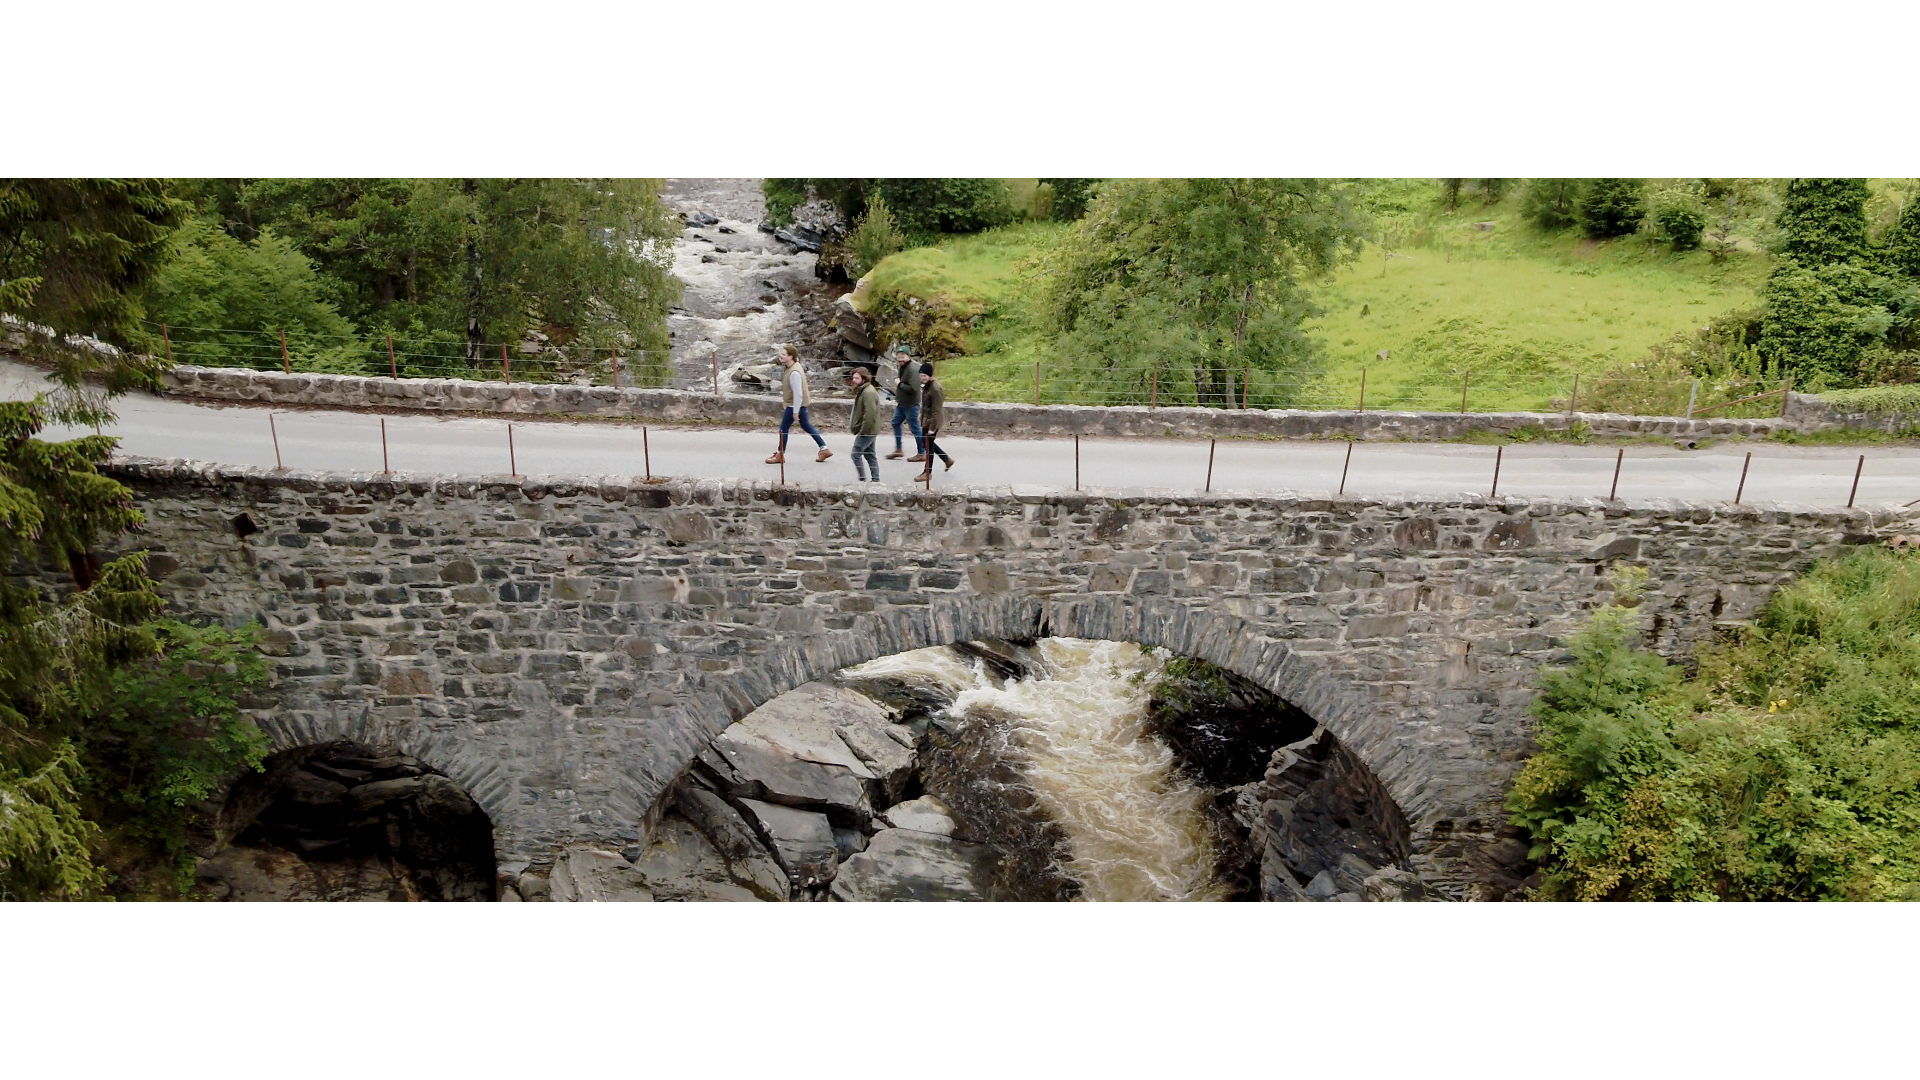 The band walking over Feshie Bridge